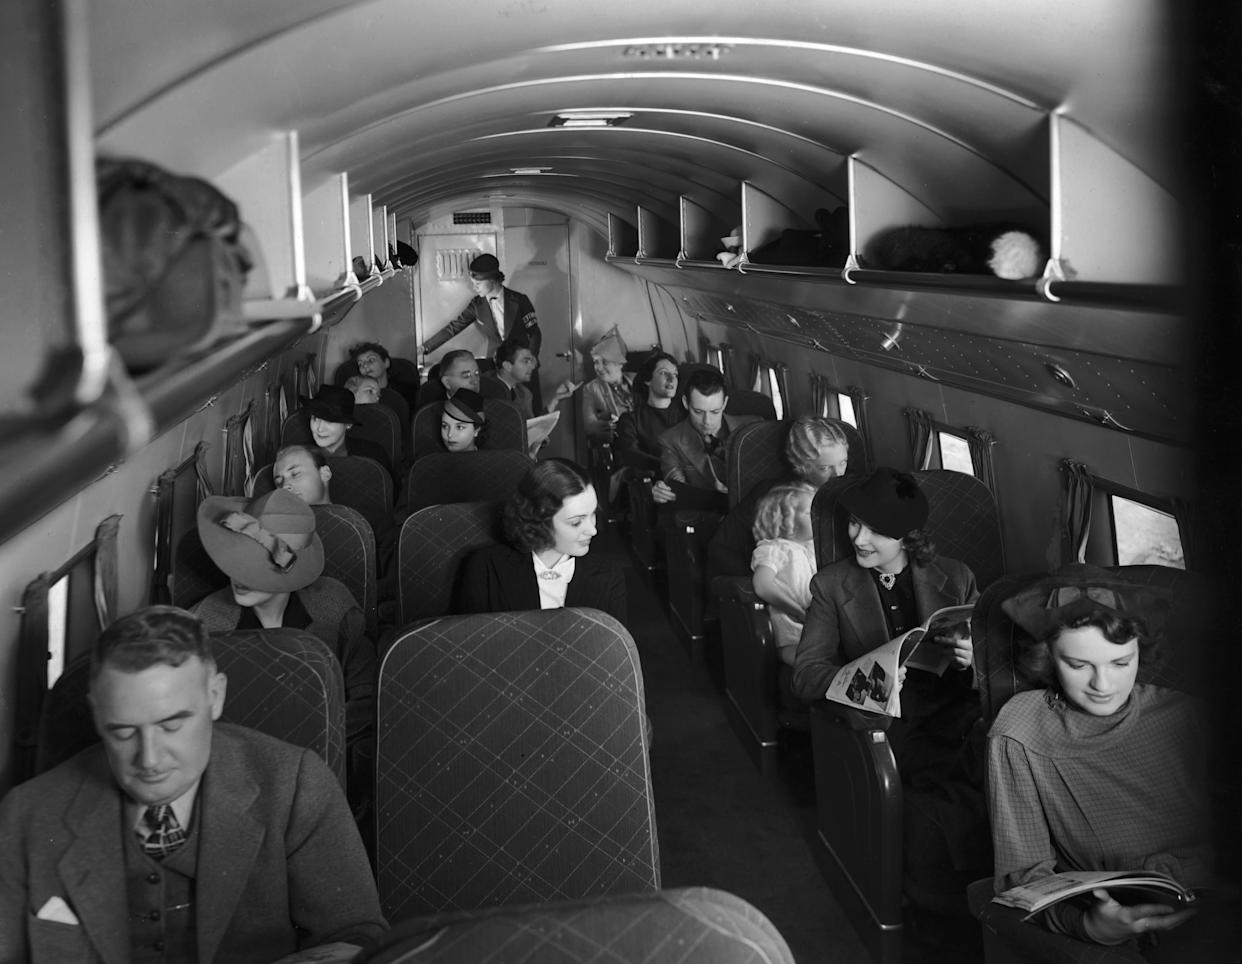 Passengers sitting in their seats inside the cabin of a 21-passenger airplane making daily trips between New York City and Chicago circa 1935.